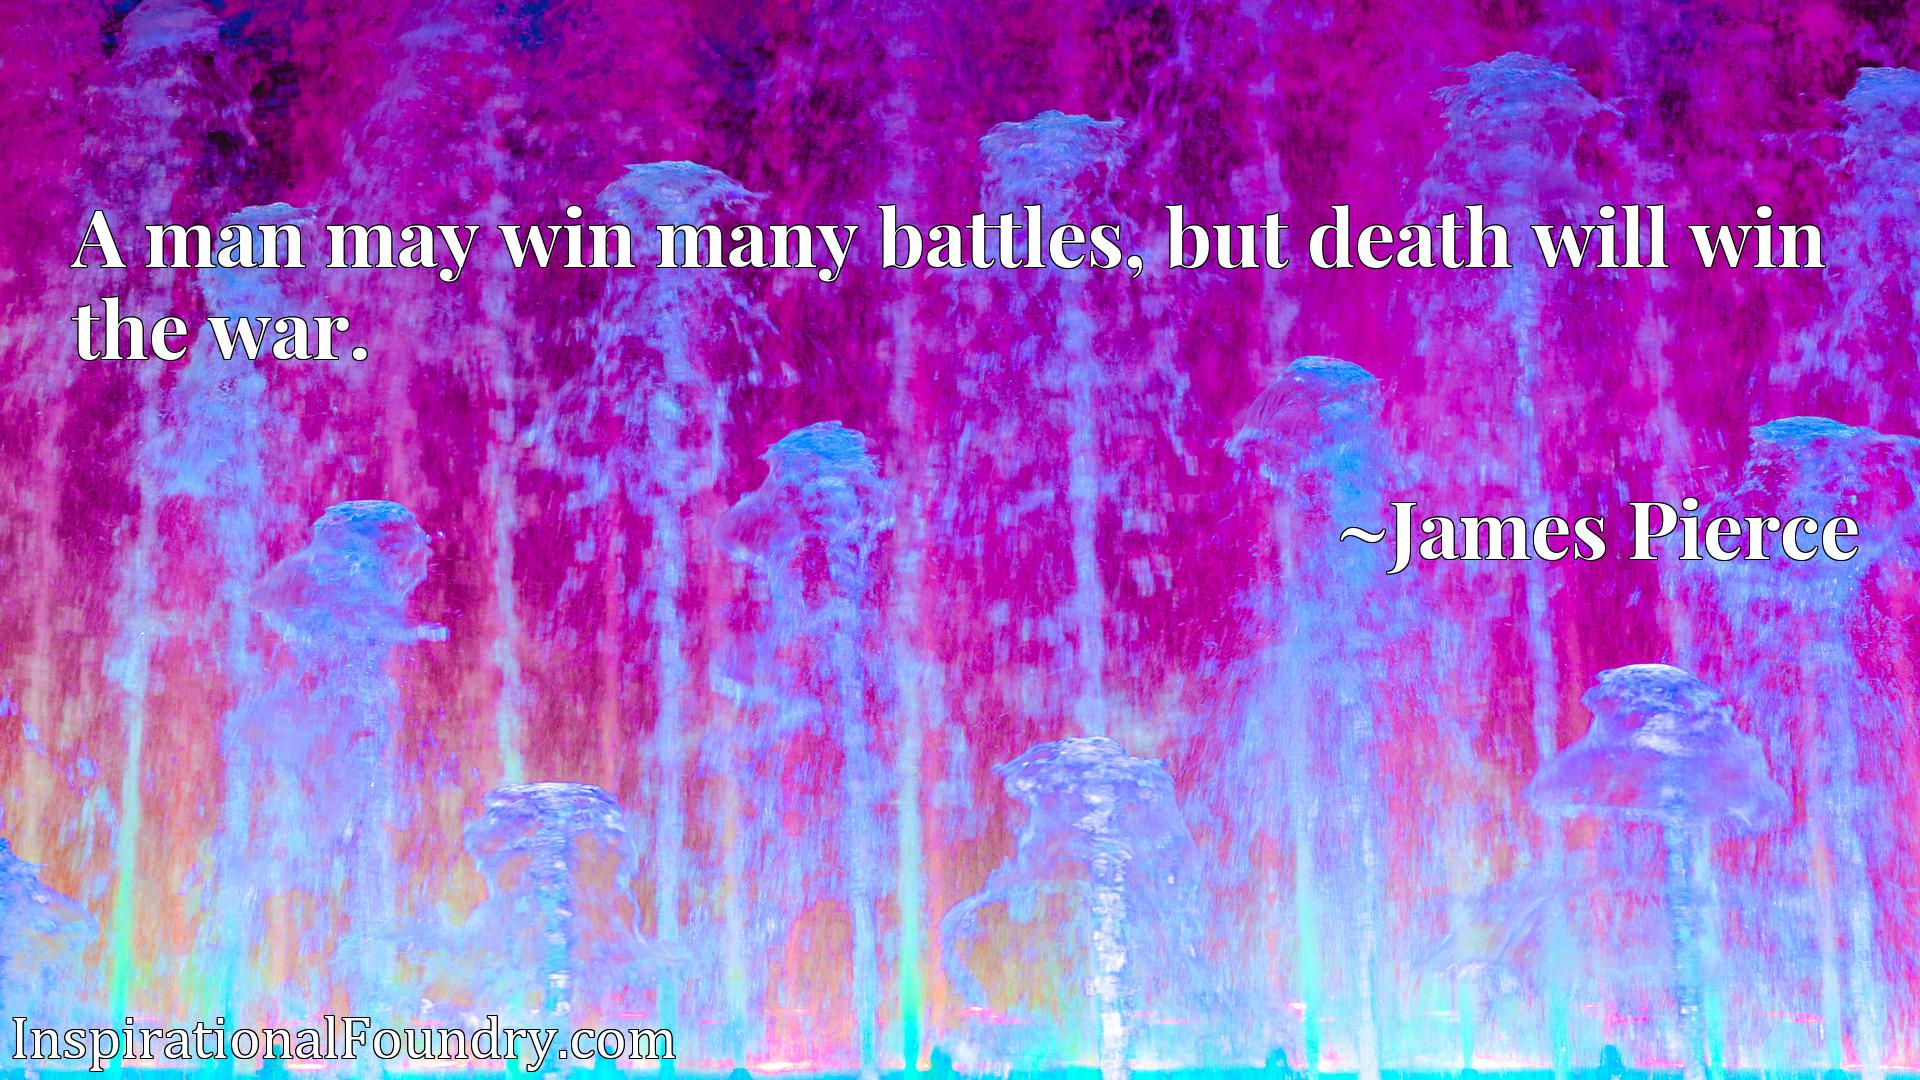 A man may win many battles, but death will win the war.